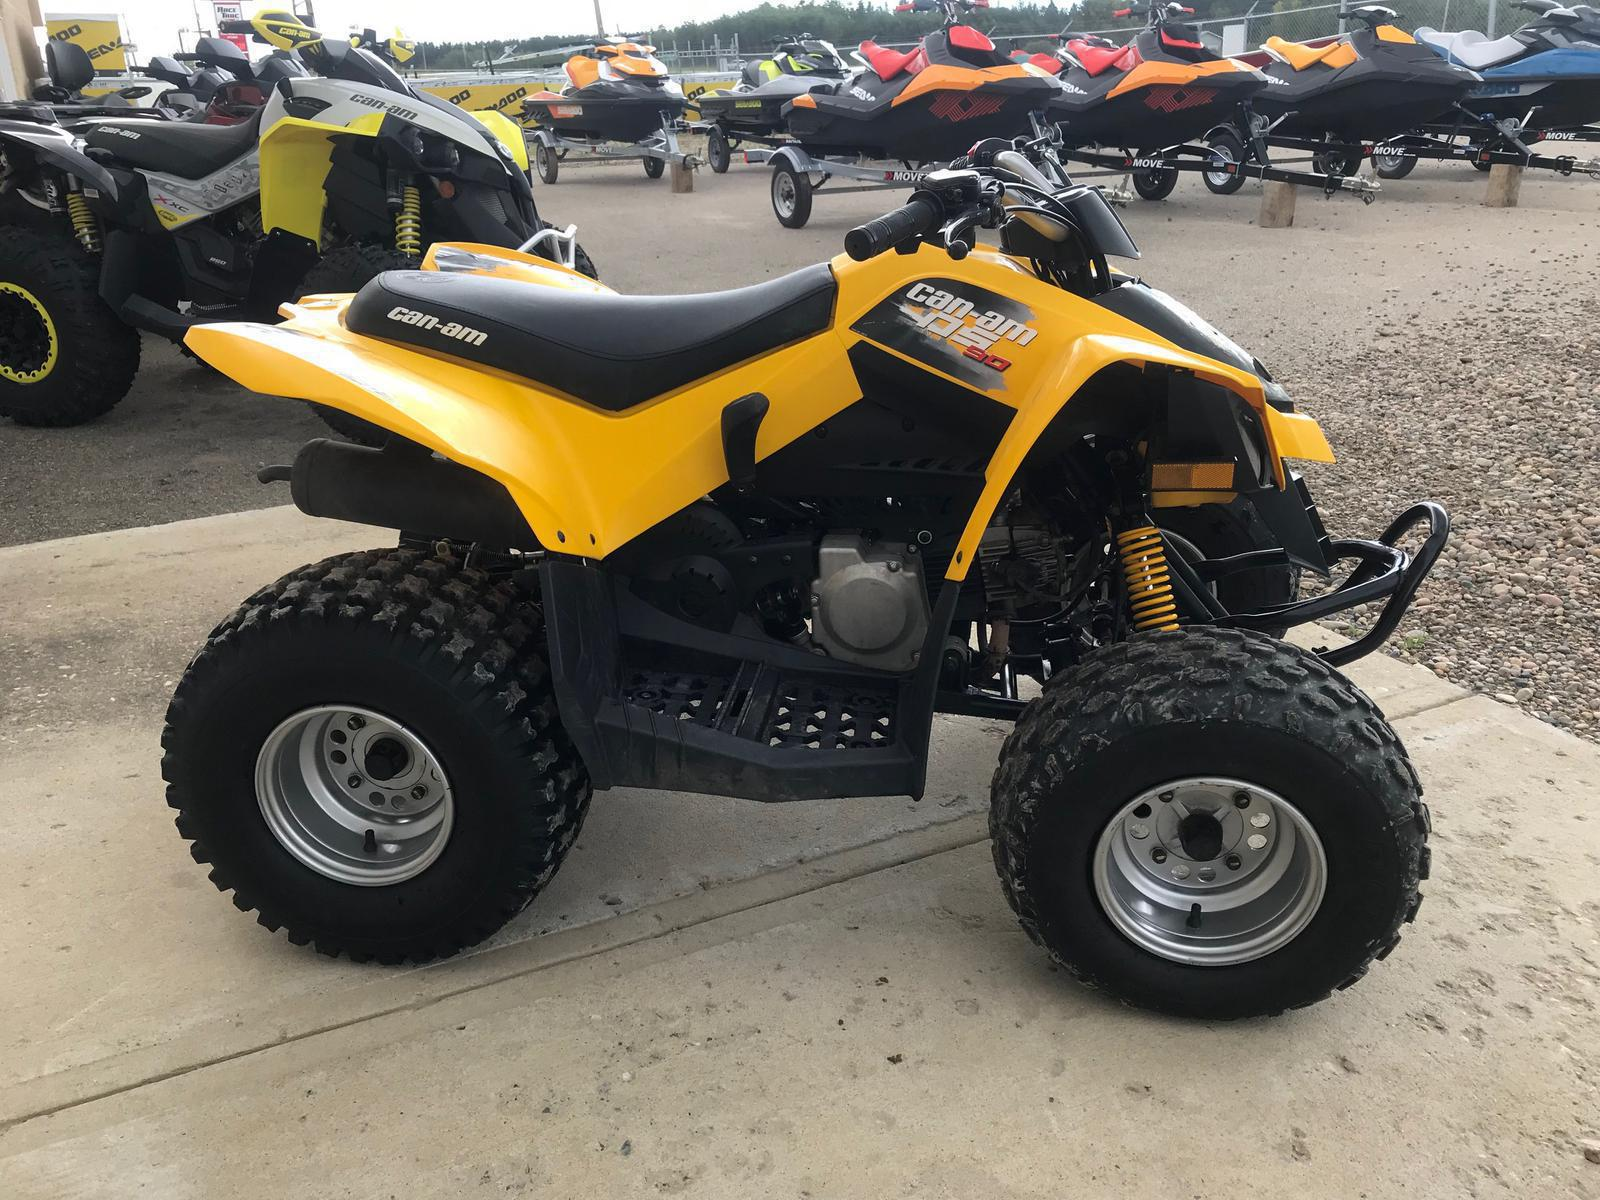 Inventory from Can-Am and Yamaha Pines Power Sports Marine